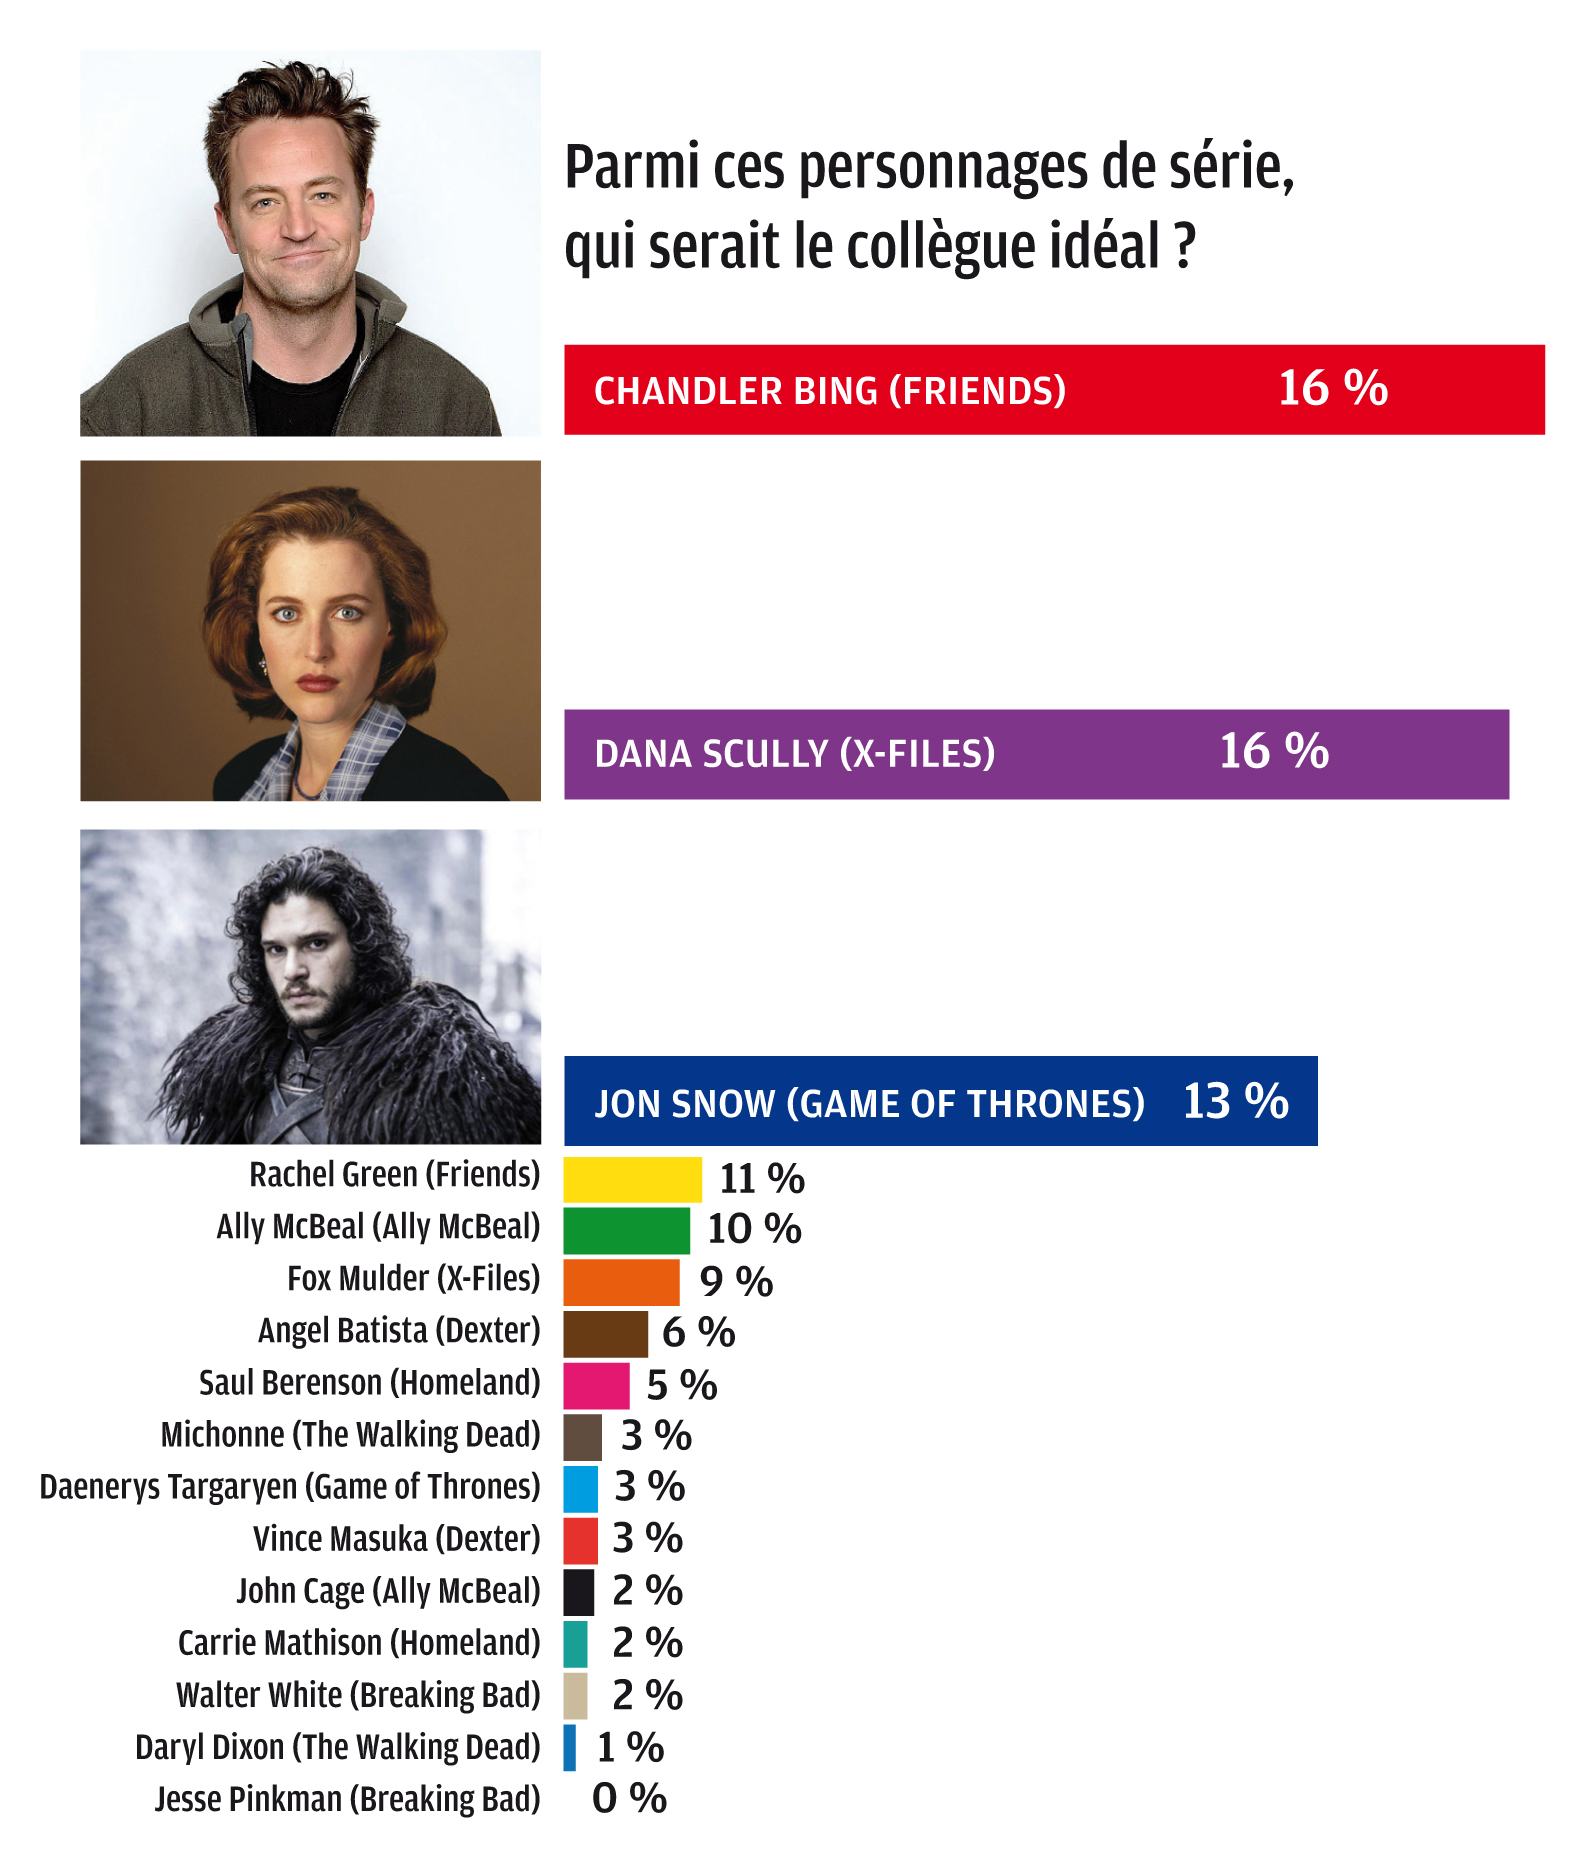 collègue idéal, Chandler Bing, Dana Scully, Jon Snow